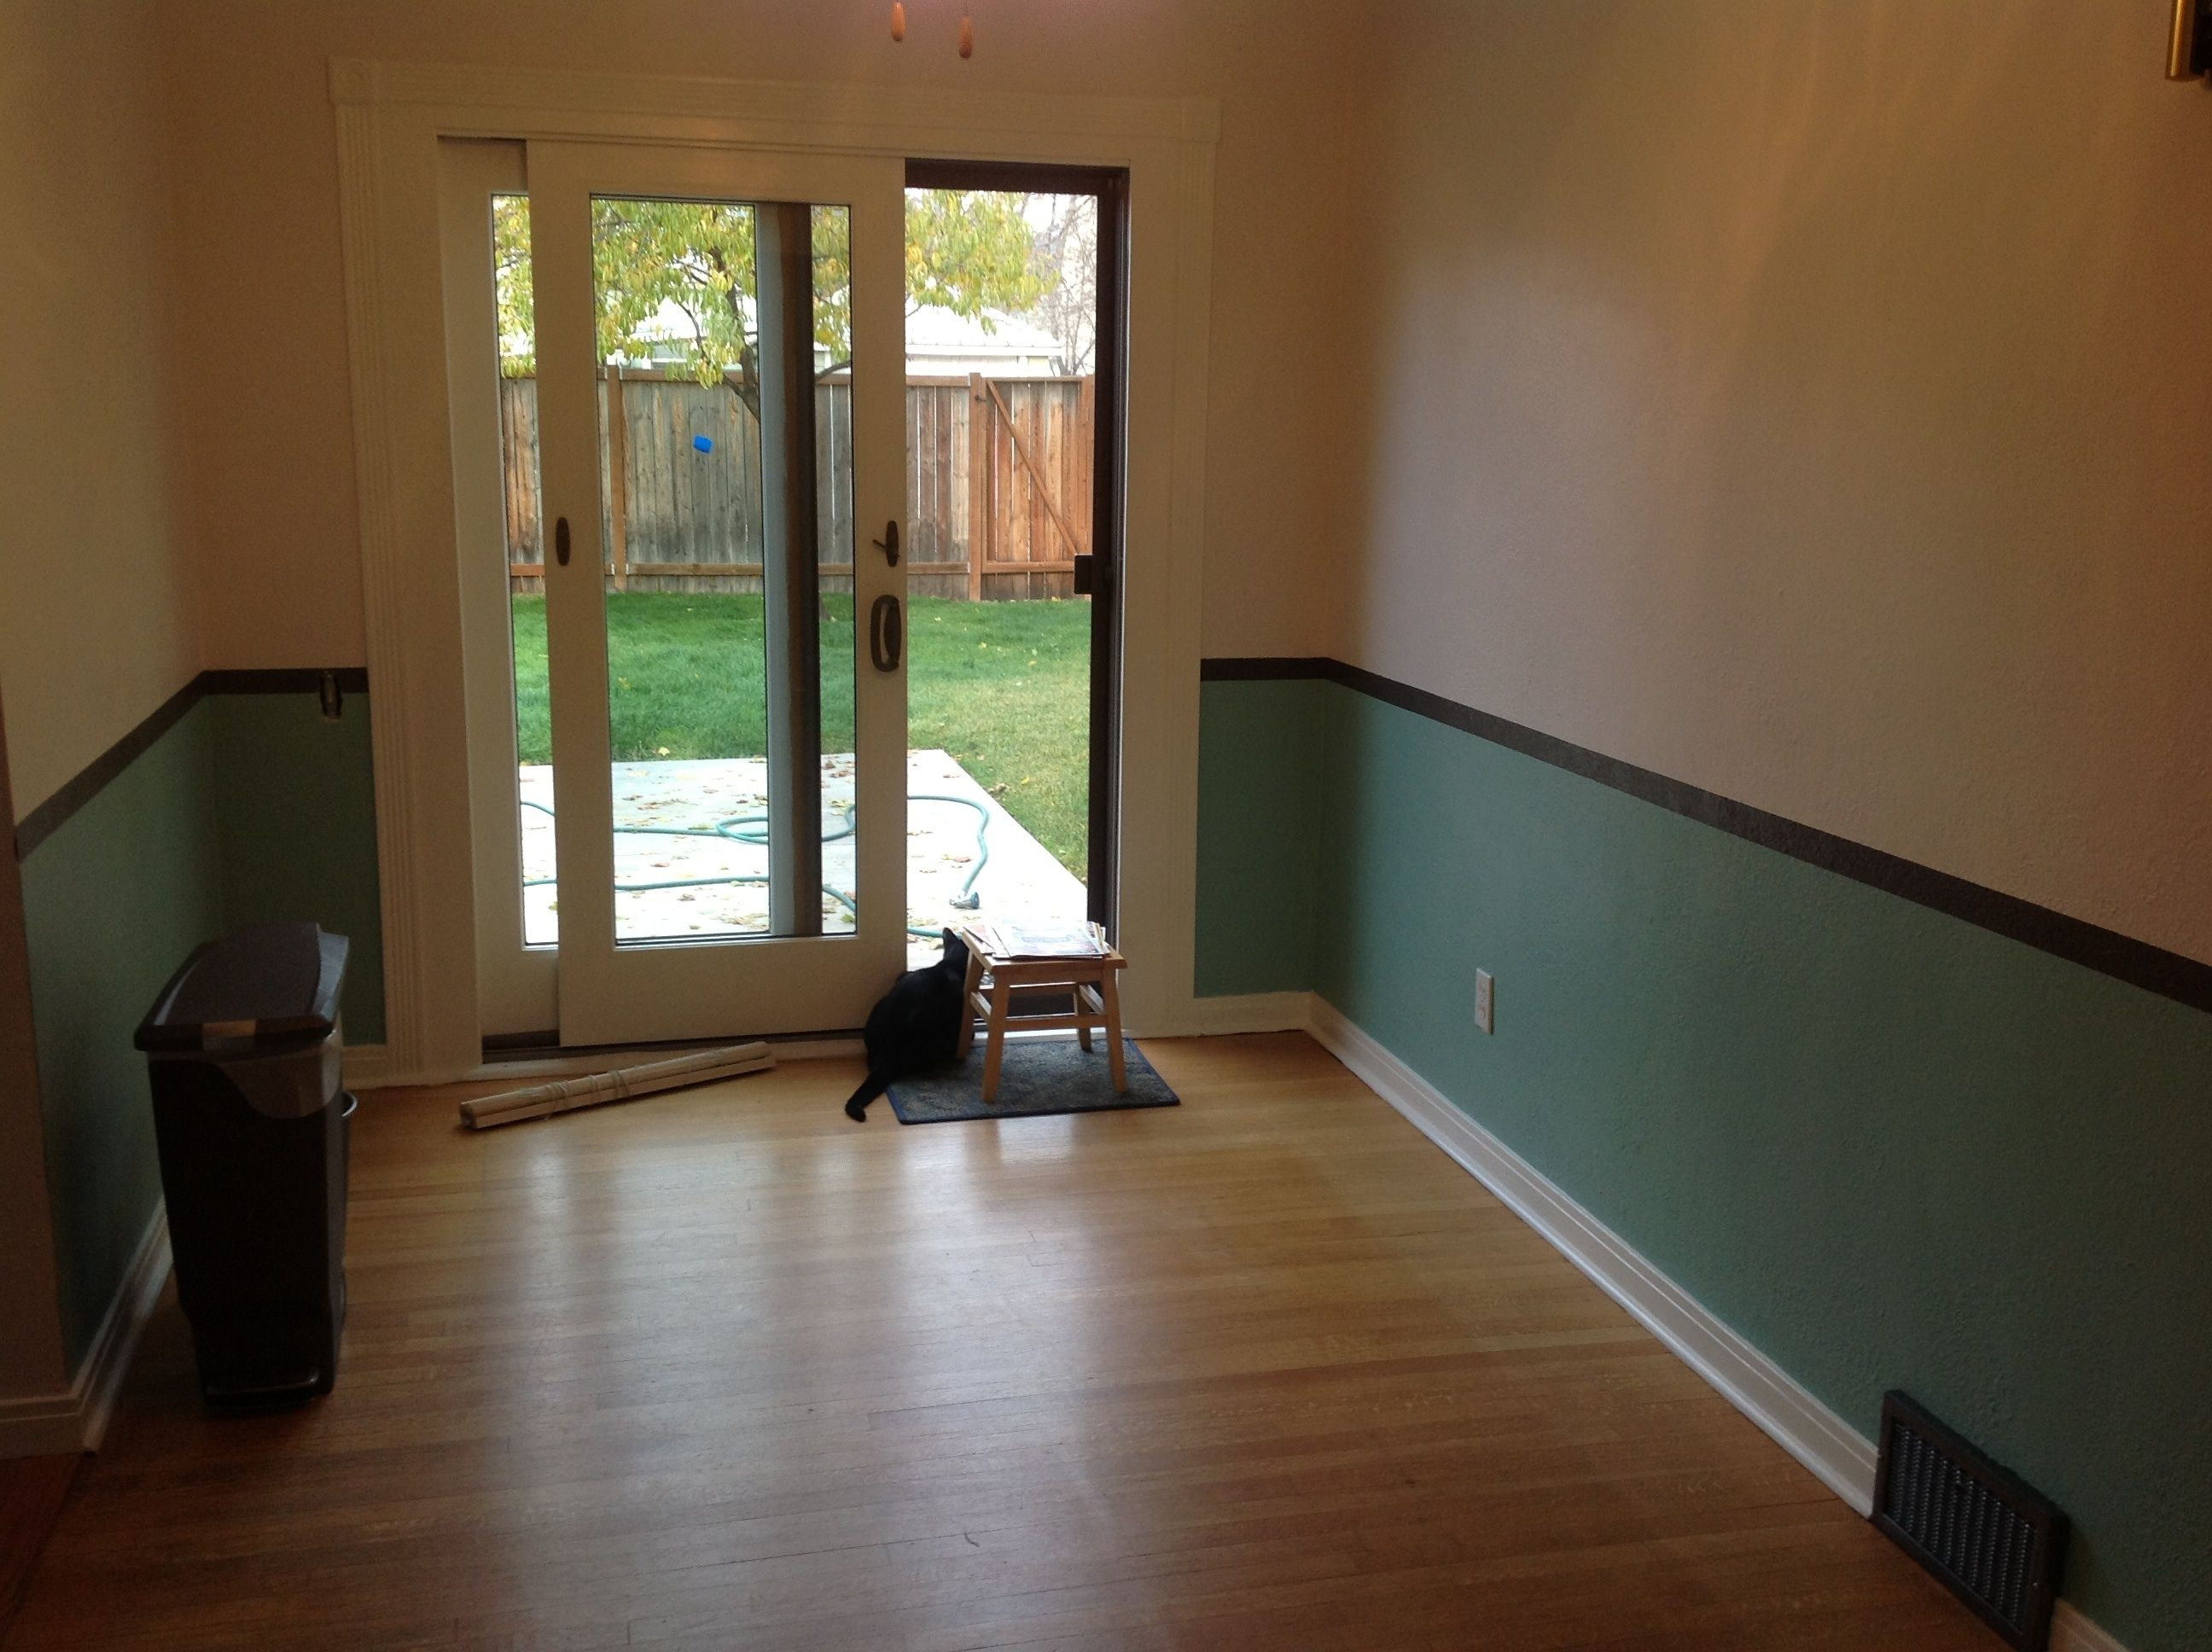 Chair Rail Height From Floor Part - 42: Make A Faux Chair Rail By Painting A Stripe At Chair-rail Height (approx